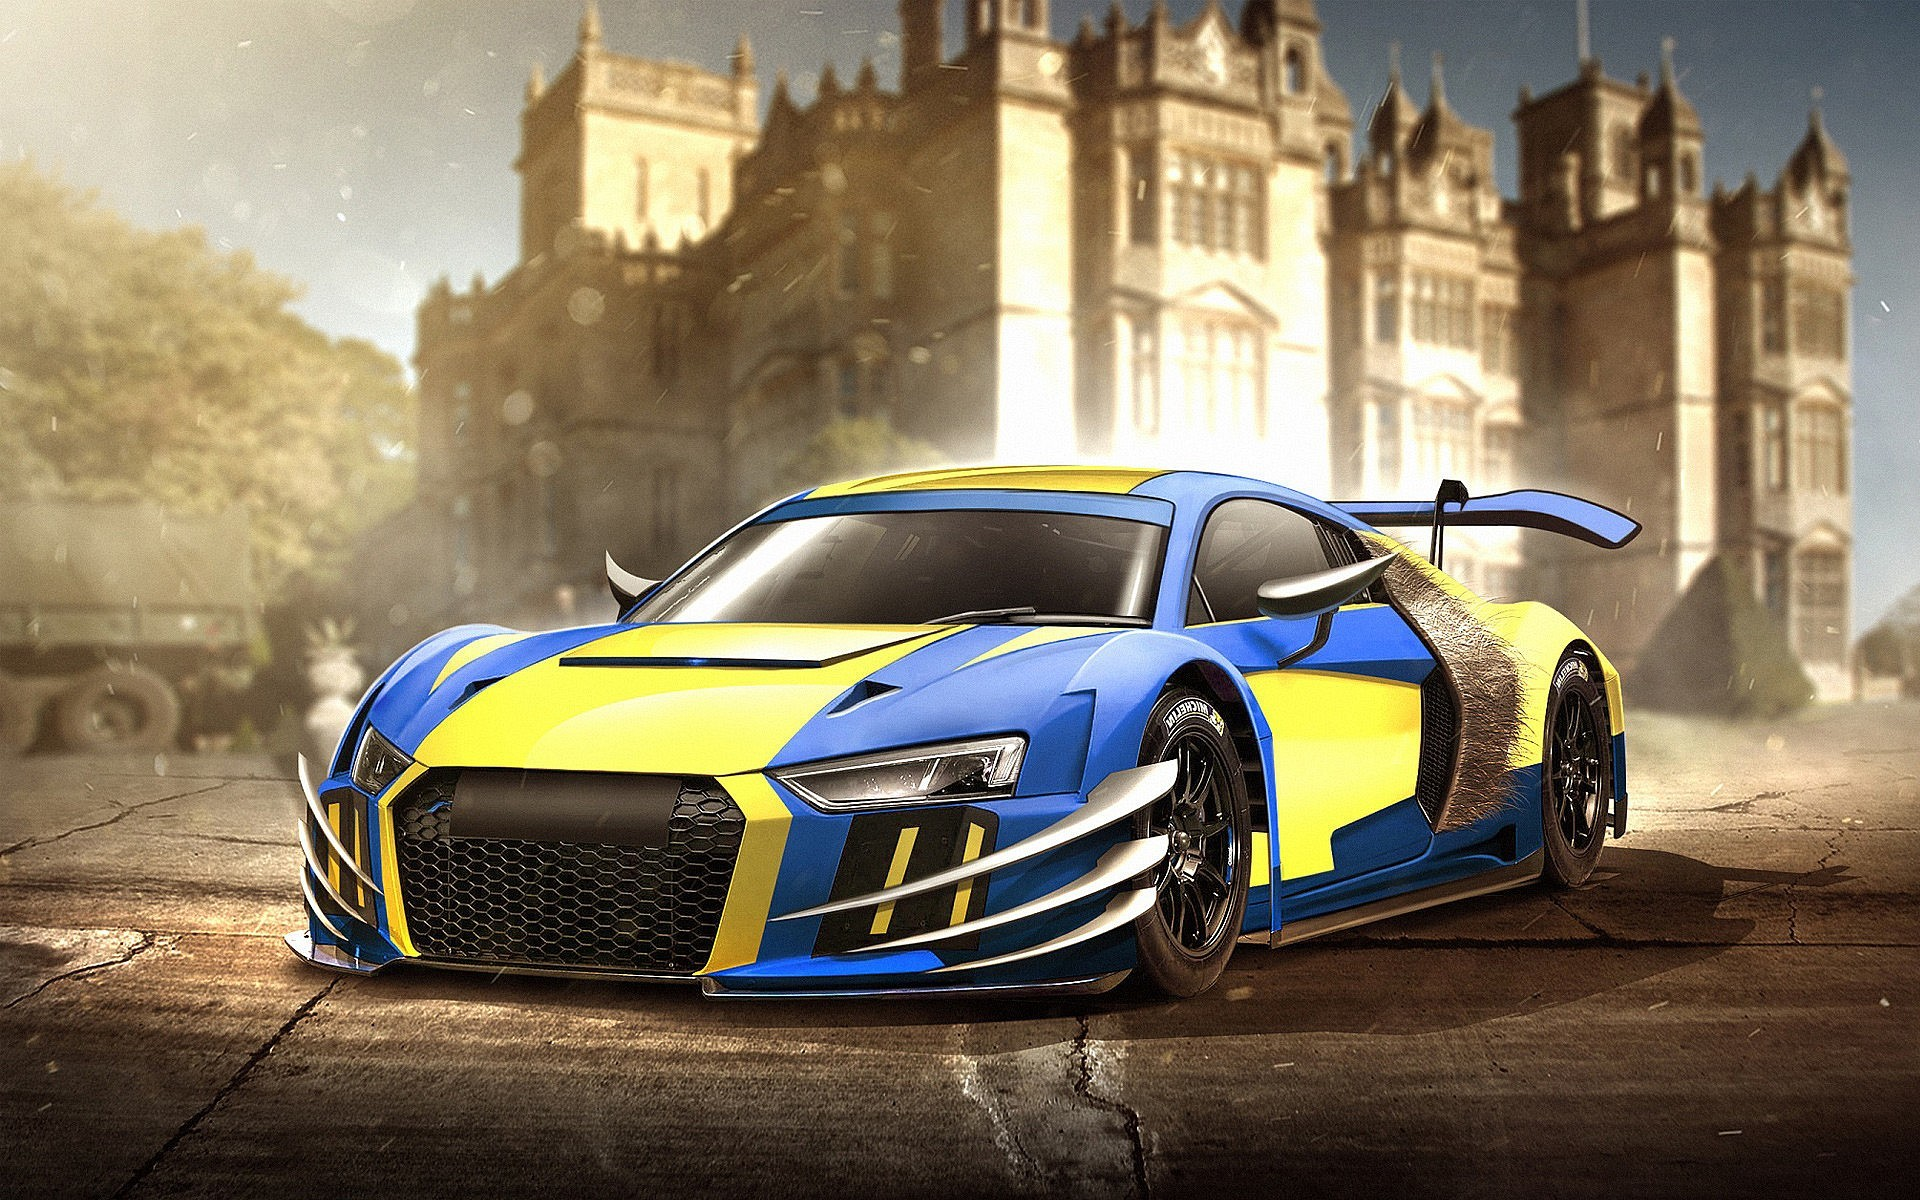 1920x1200 Audi r8 wolverine wallpapers hd hintergrundbild prix - small